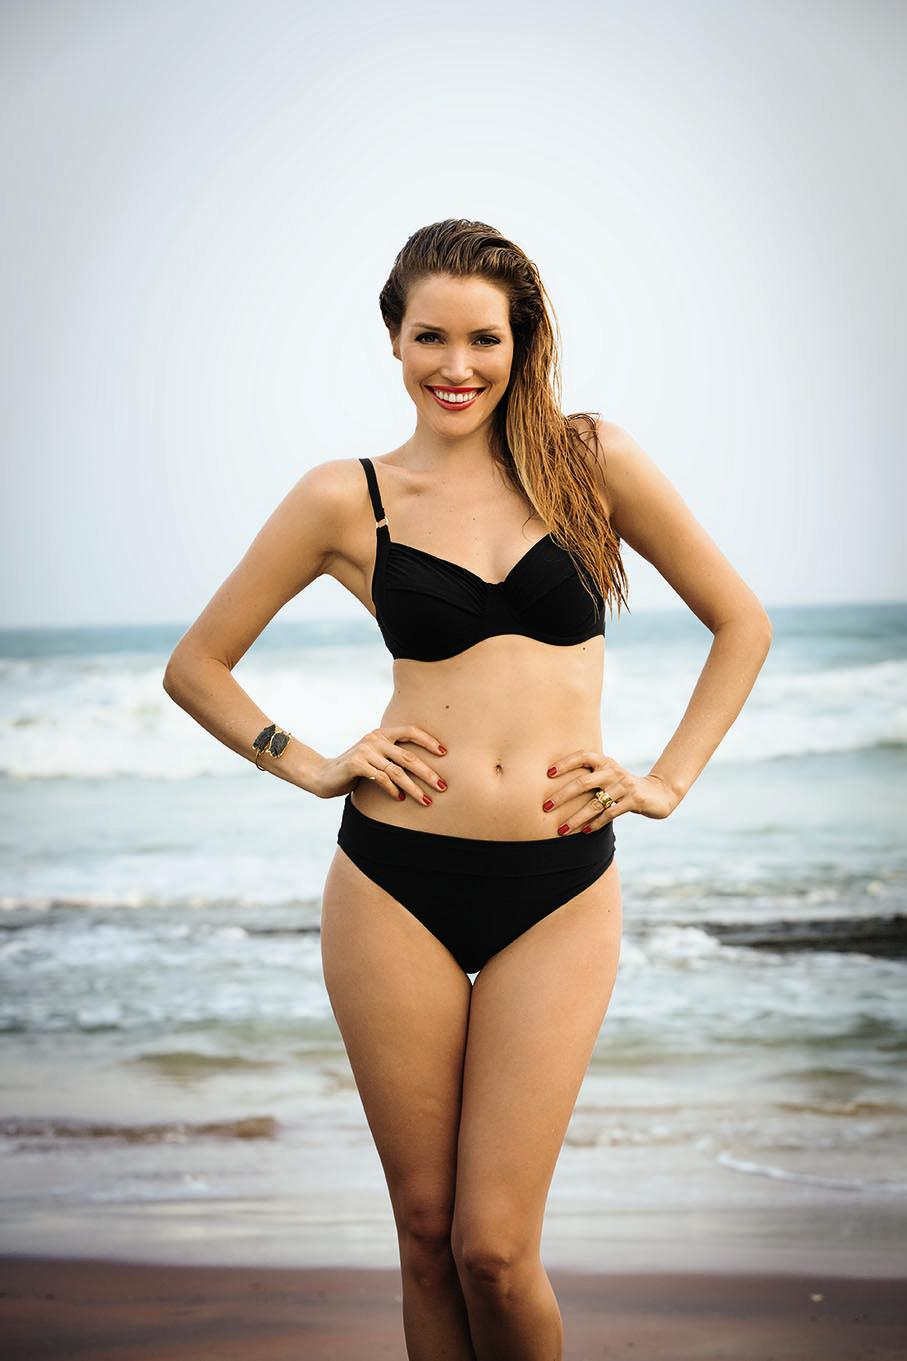 Rosa Faia Bügelbikini Top Twiggy mit Special Big Cup Support